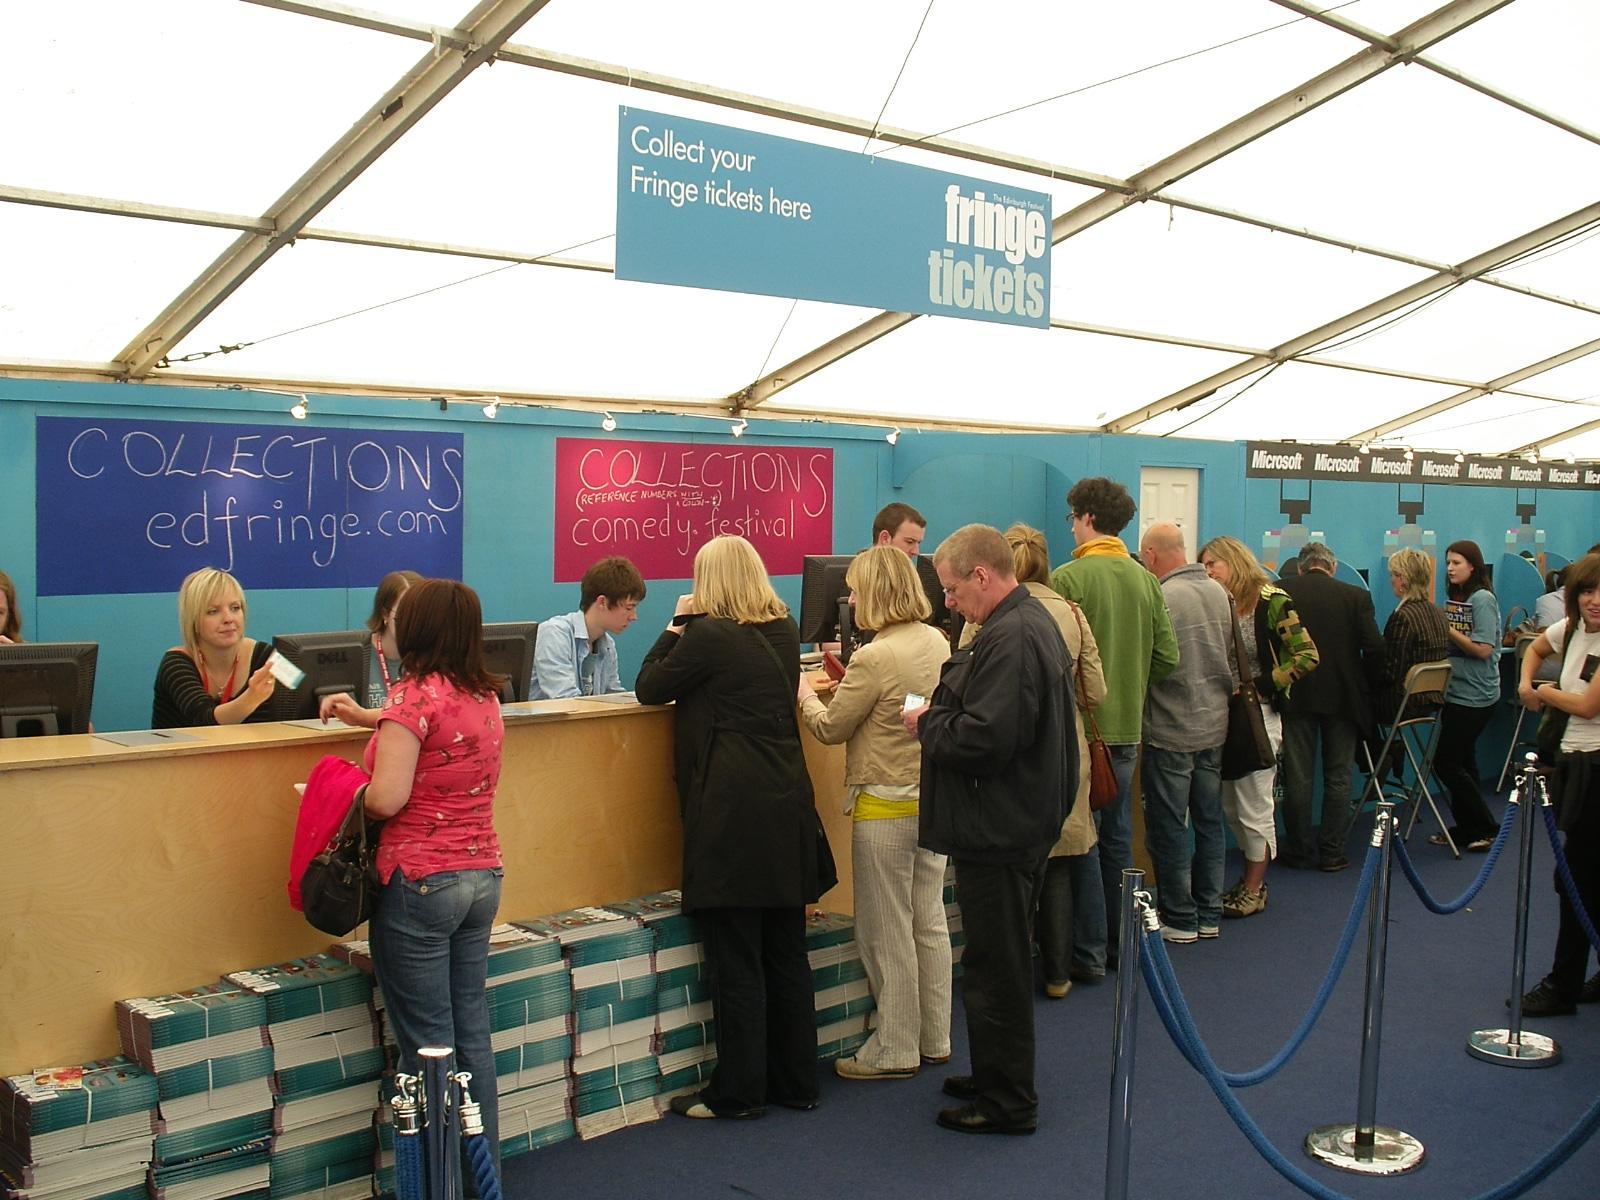 Queue for the Fringe - Online Shop (by Microsoft), Offline